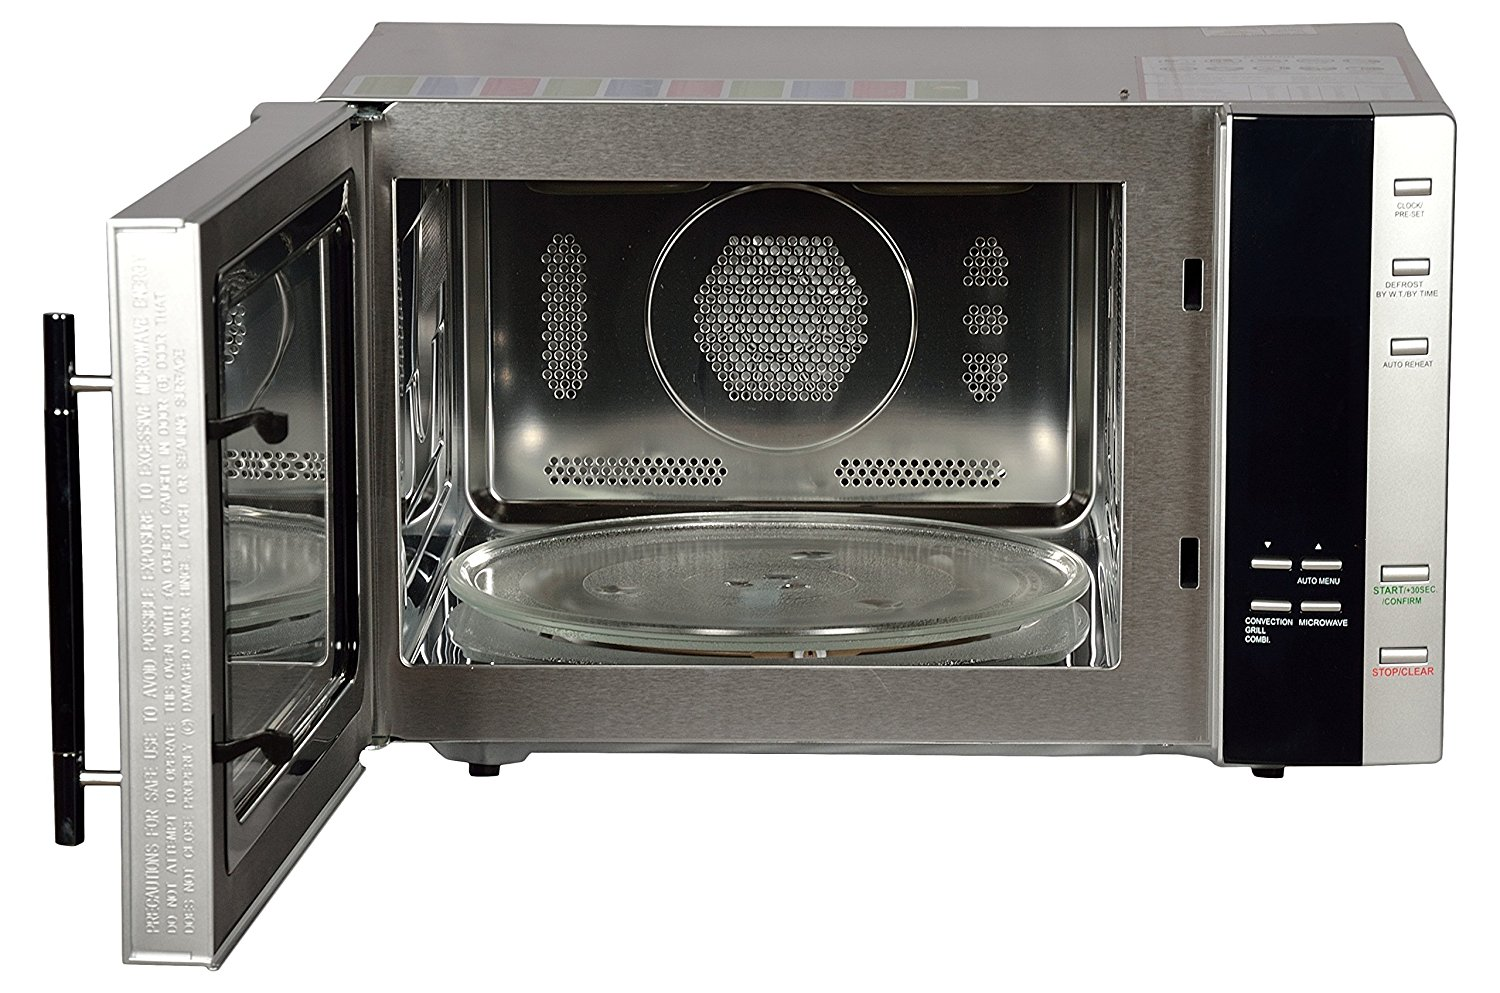 Godrej 30L convection oven